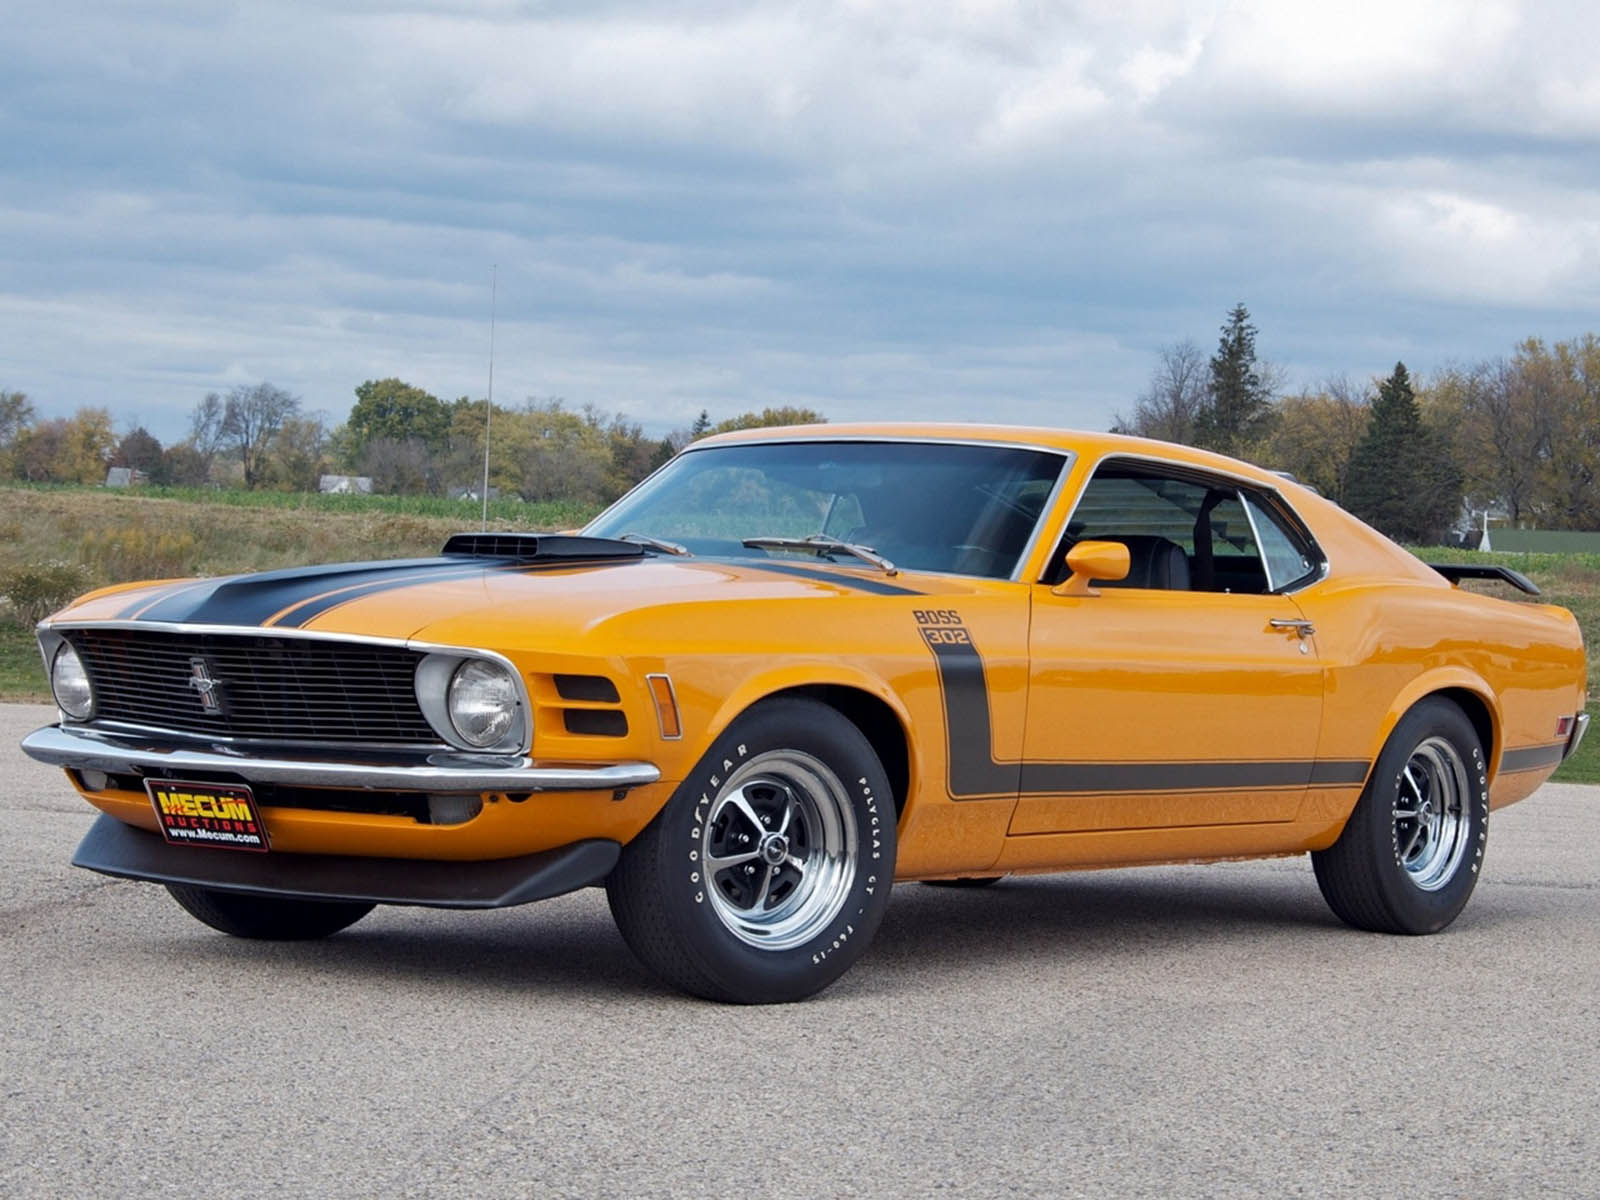 Tag Classic Cars Wallpapers Backgrounds Photos Picturesand Images 1600x1200